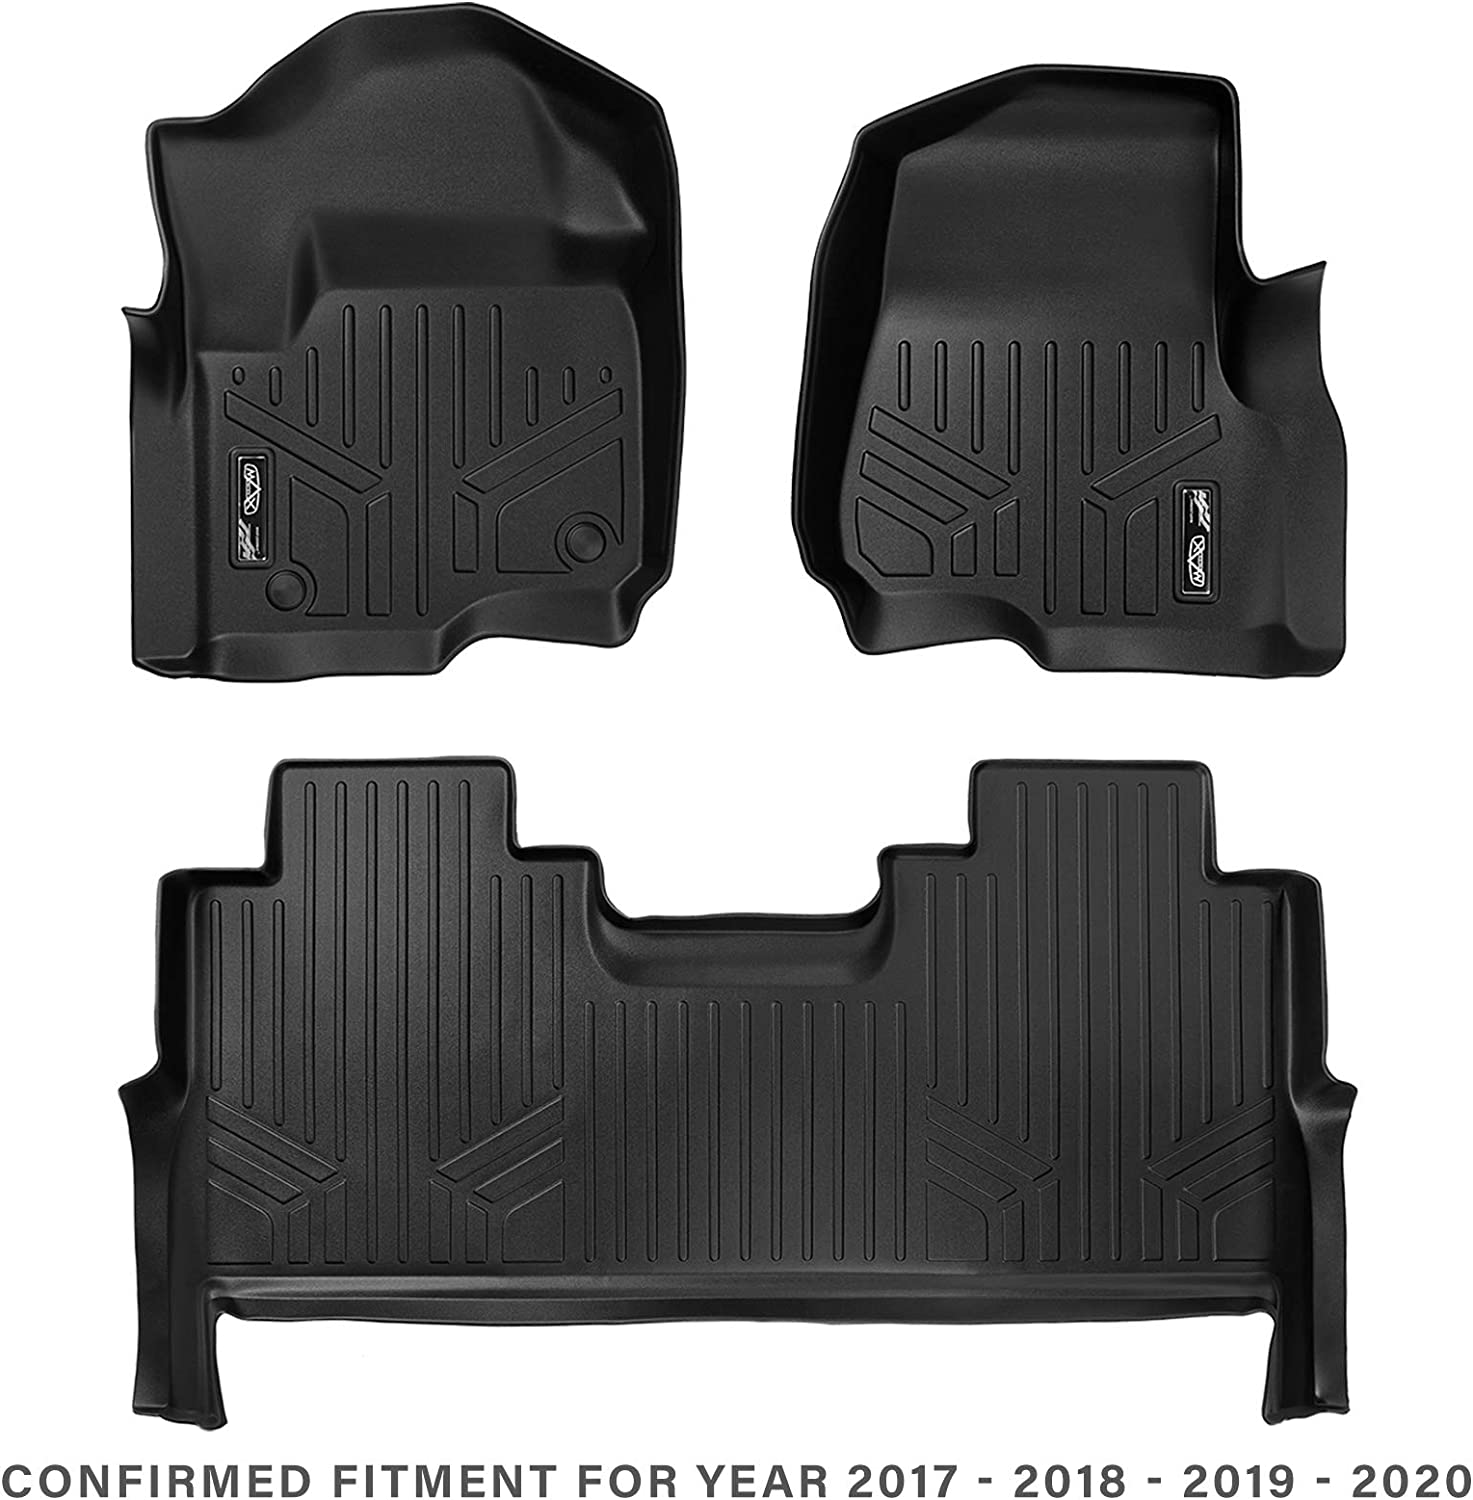 MAXFLOORMAT Floor Mats for Ford F-250 // F-350 2017 SuperCrew Cab with Front Row Bucket Seats 2 Row Set Black